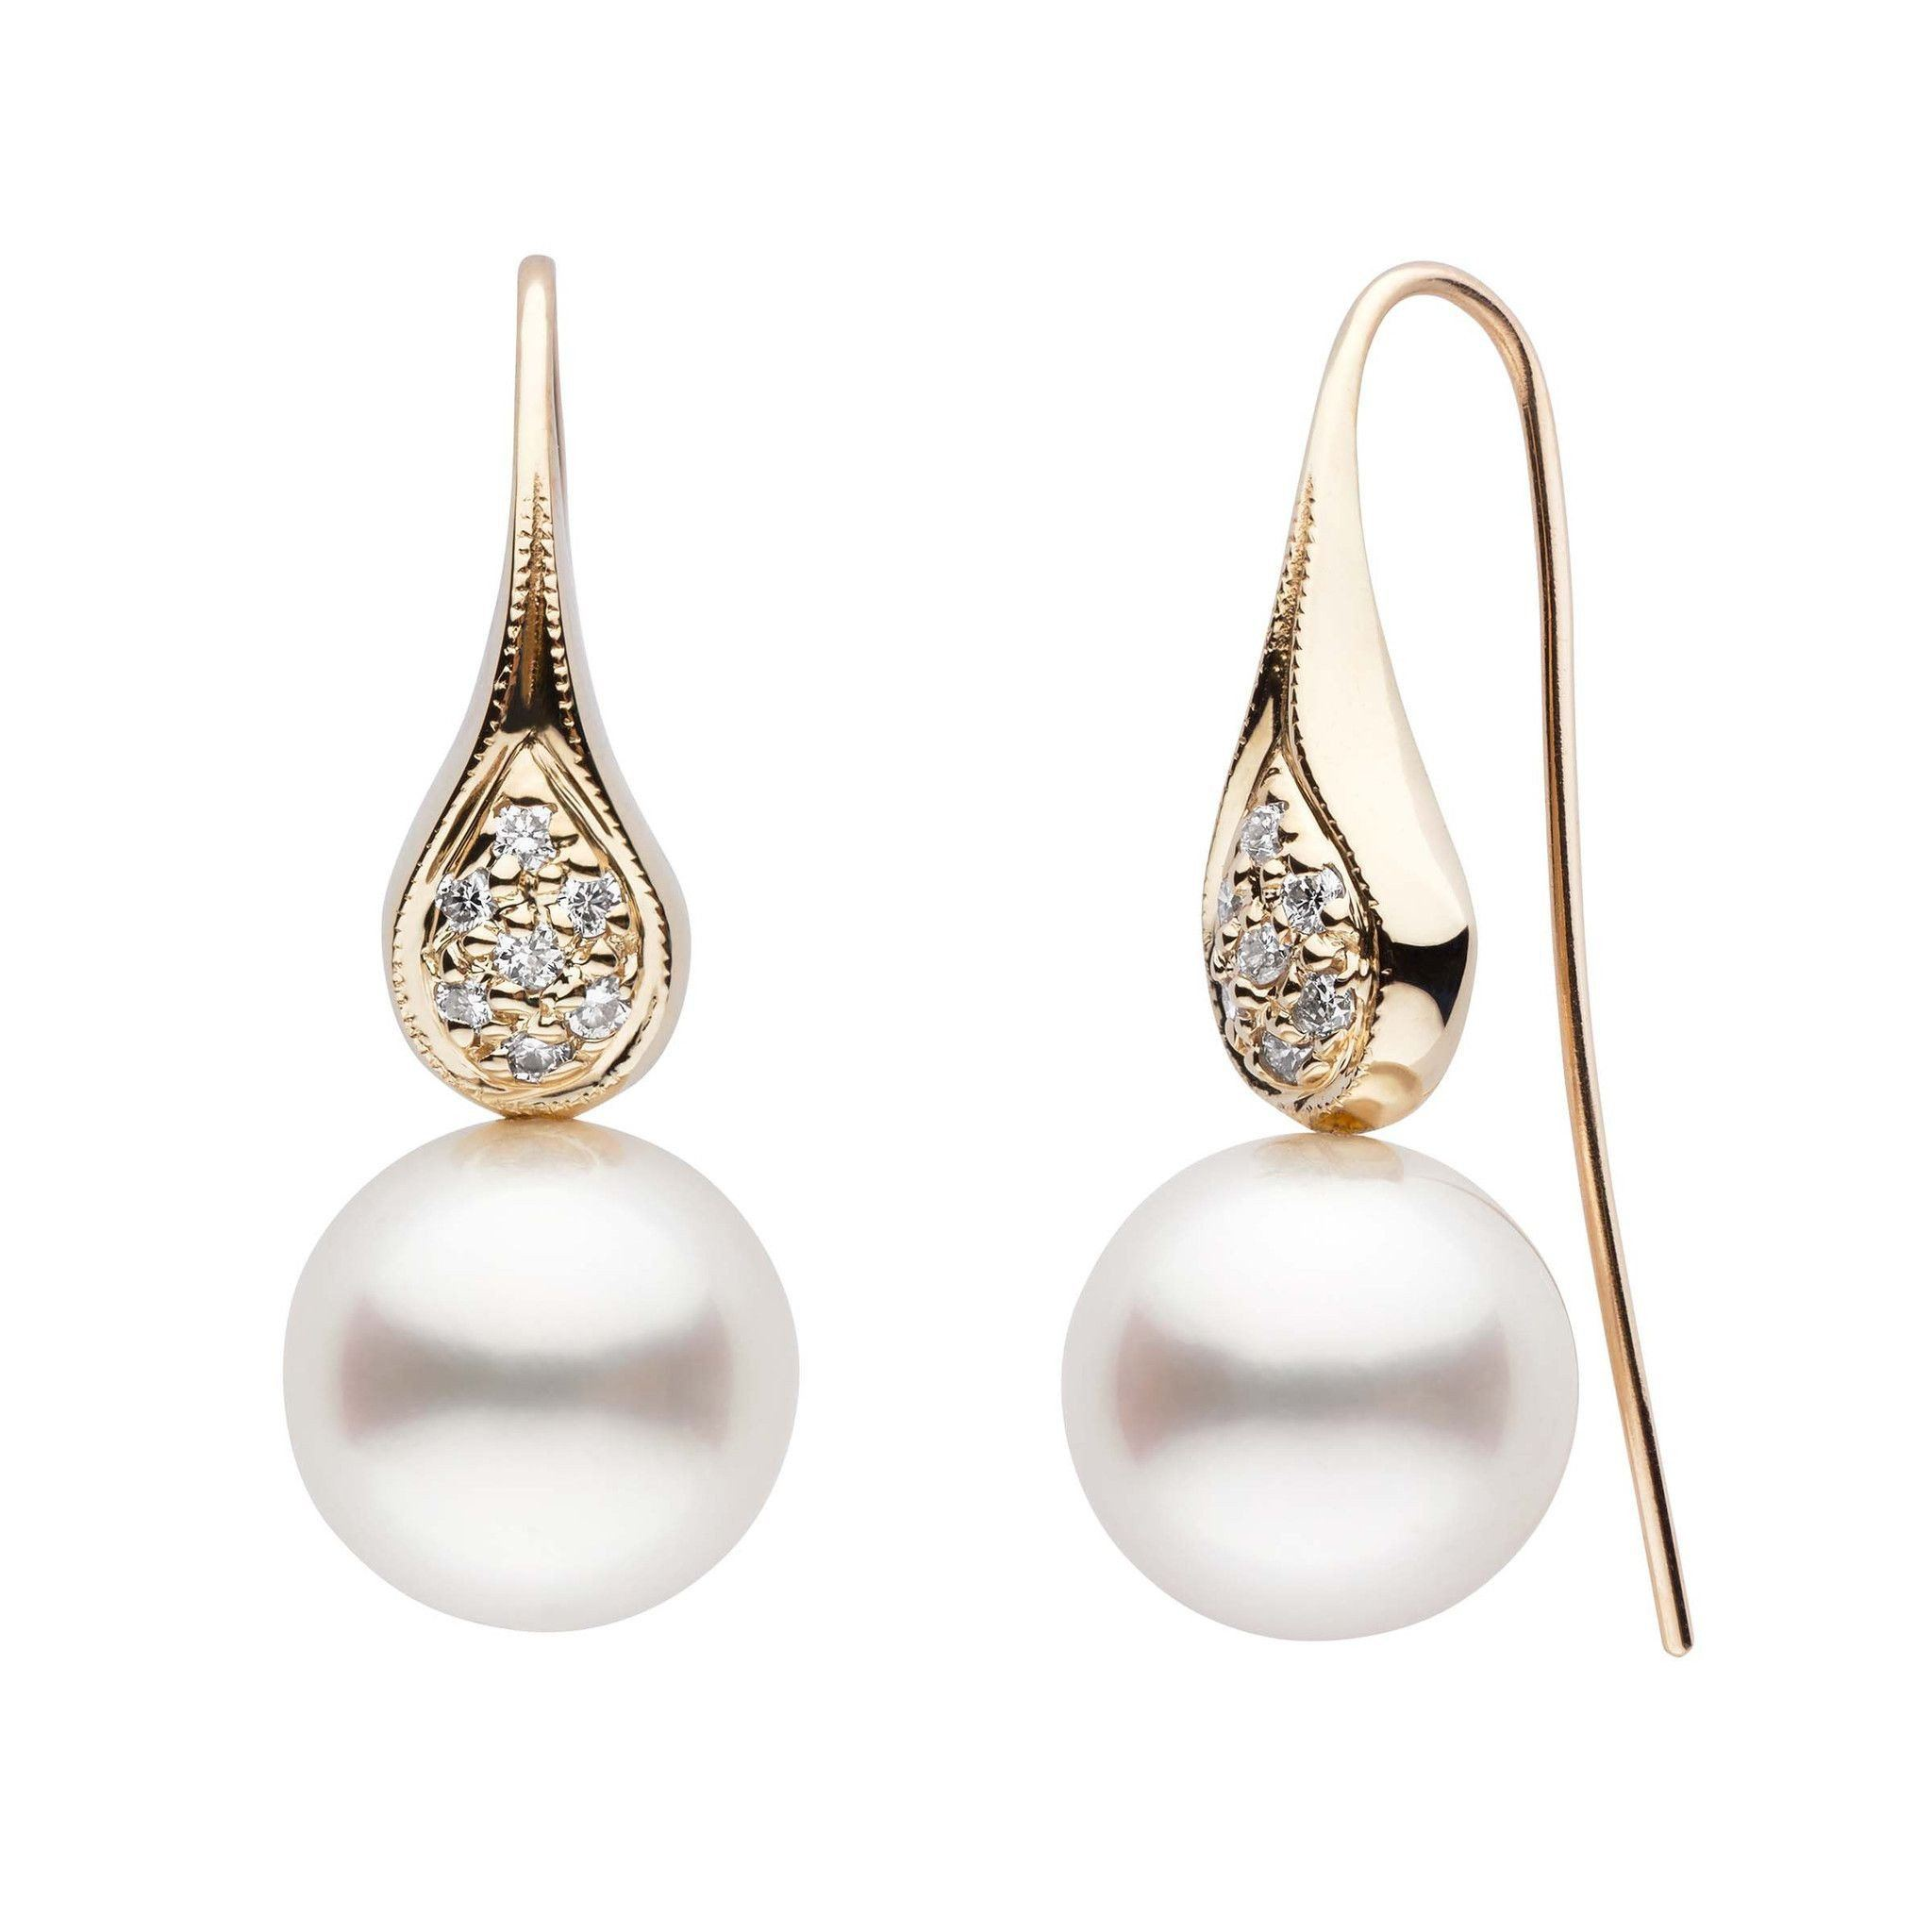 Frost Collection White South Sea Pearl and Diamond Earrings